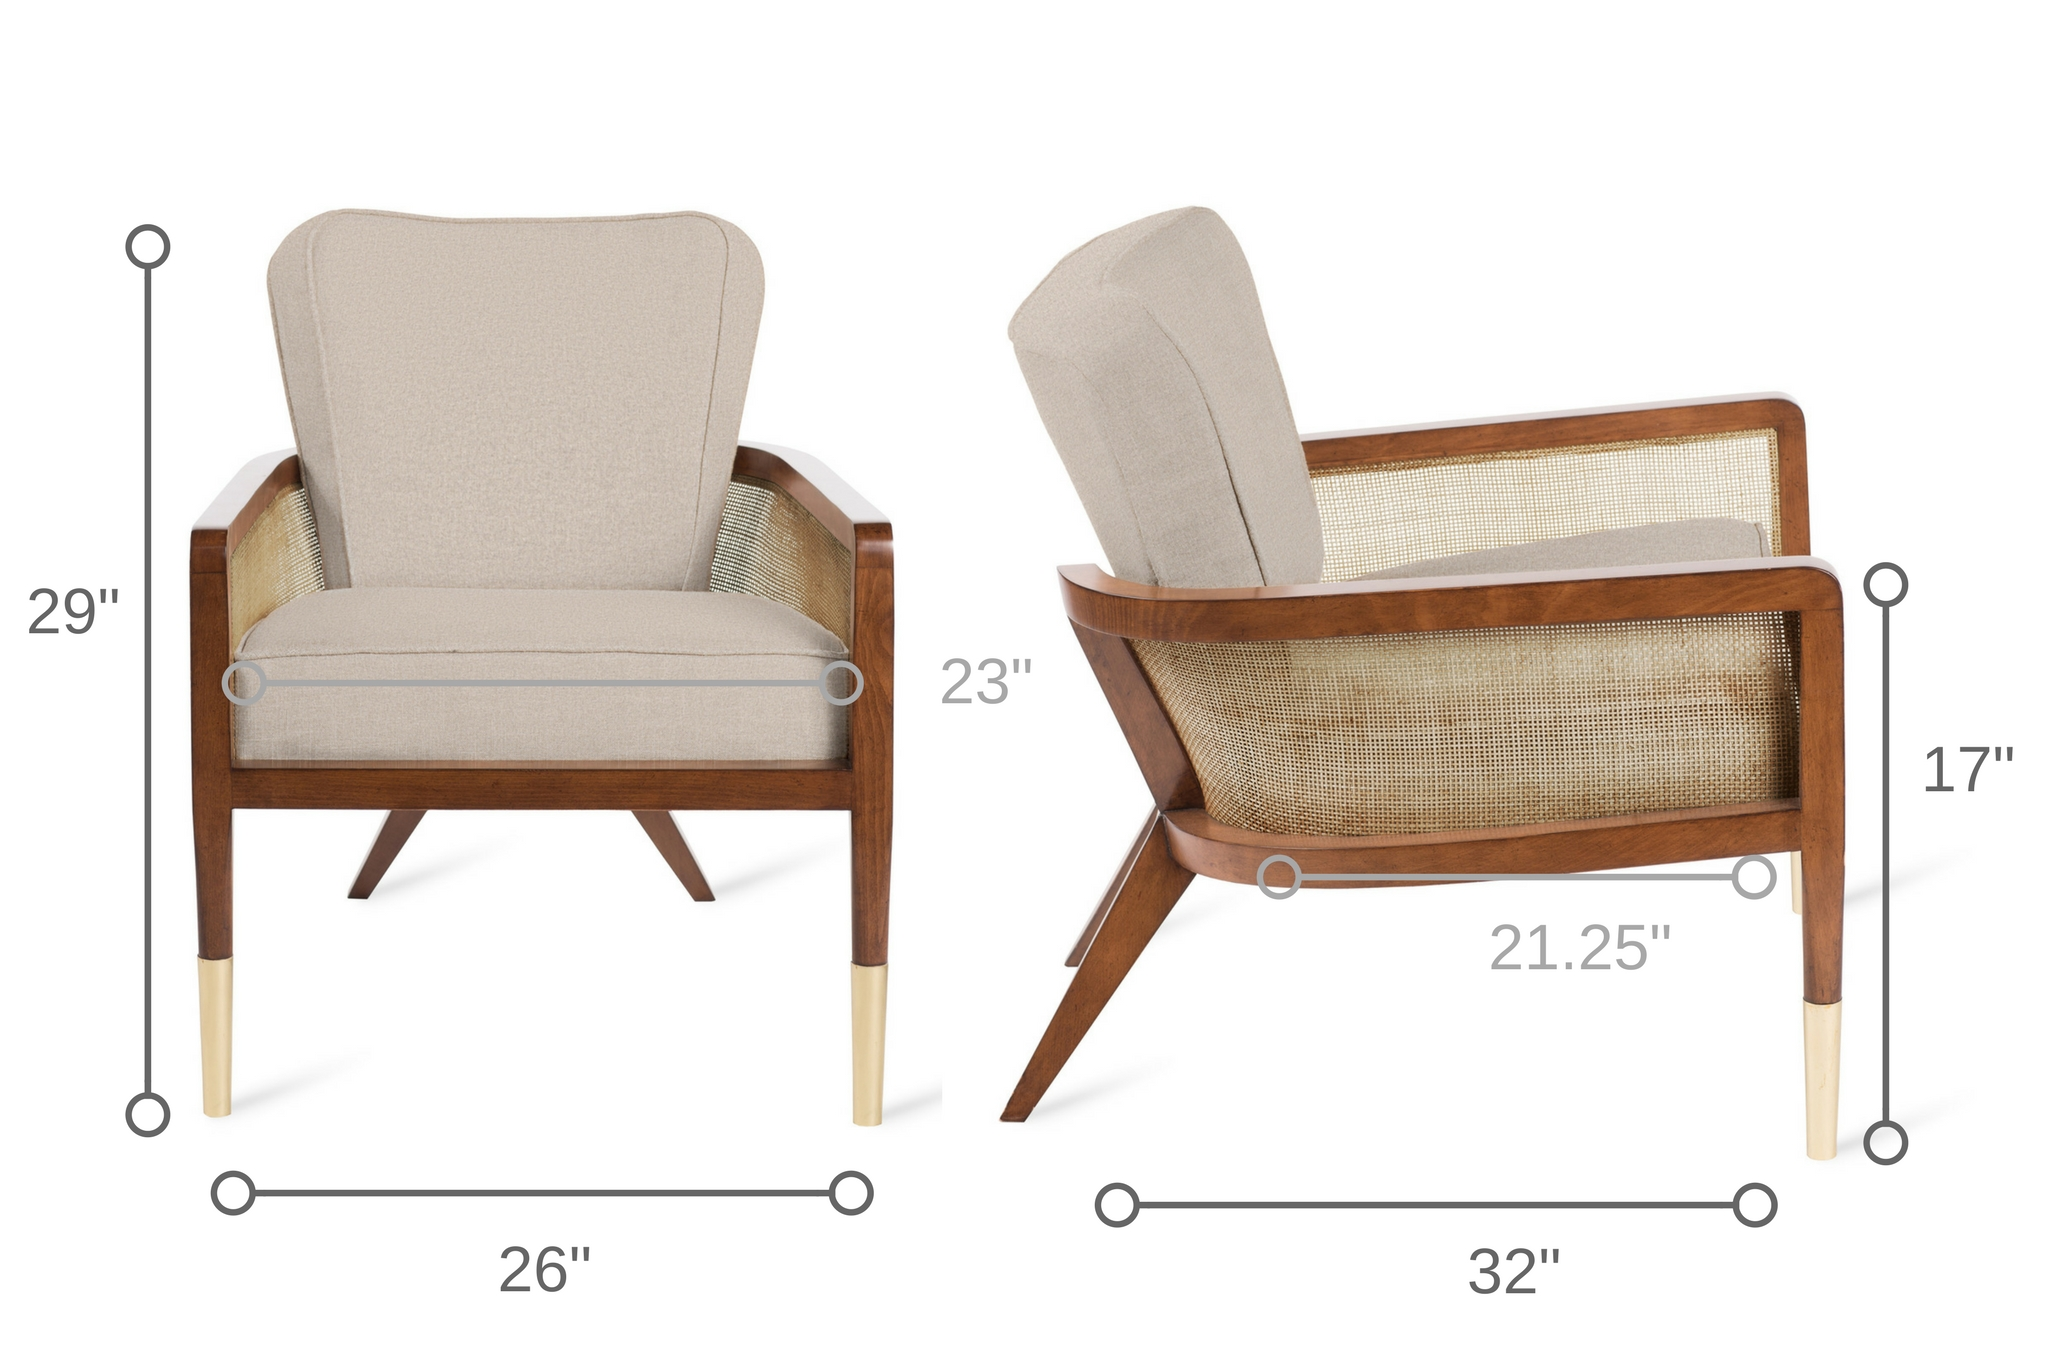 Dowel Furniture Grant Lounge Chair Dimensions